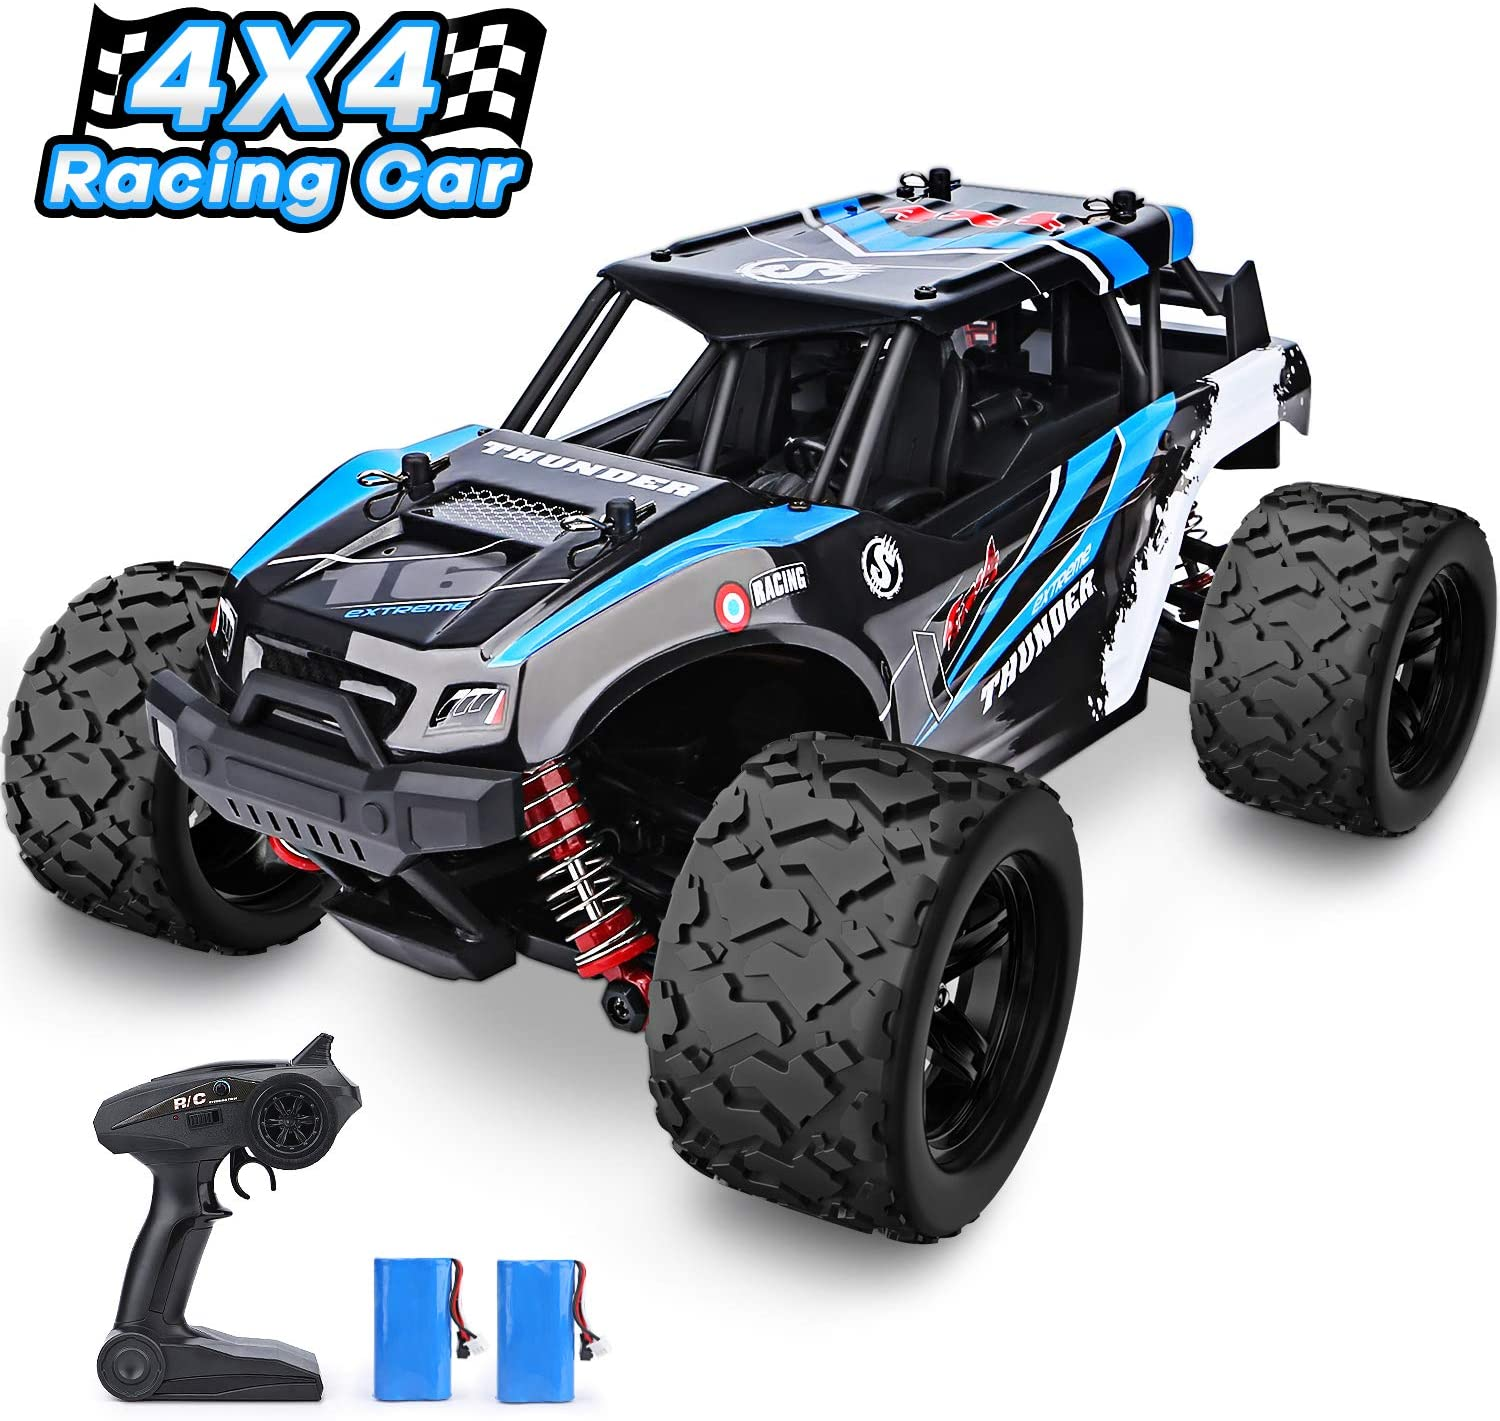 YEZI 1 18 Scale Large RC Cars 36km h Speed 2.4Ghz All Terrain Waterproof Remote Control Truck,4×4 Electric Rapidly Off Road car for, Remote Control car for Kids Boys and Adults